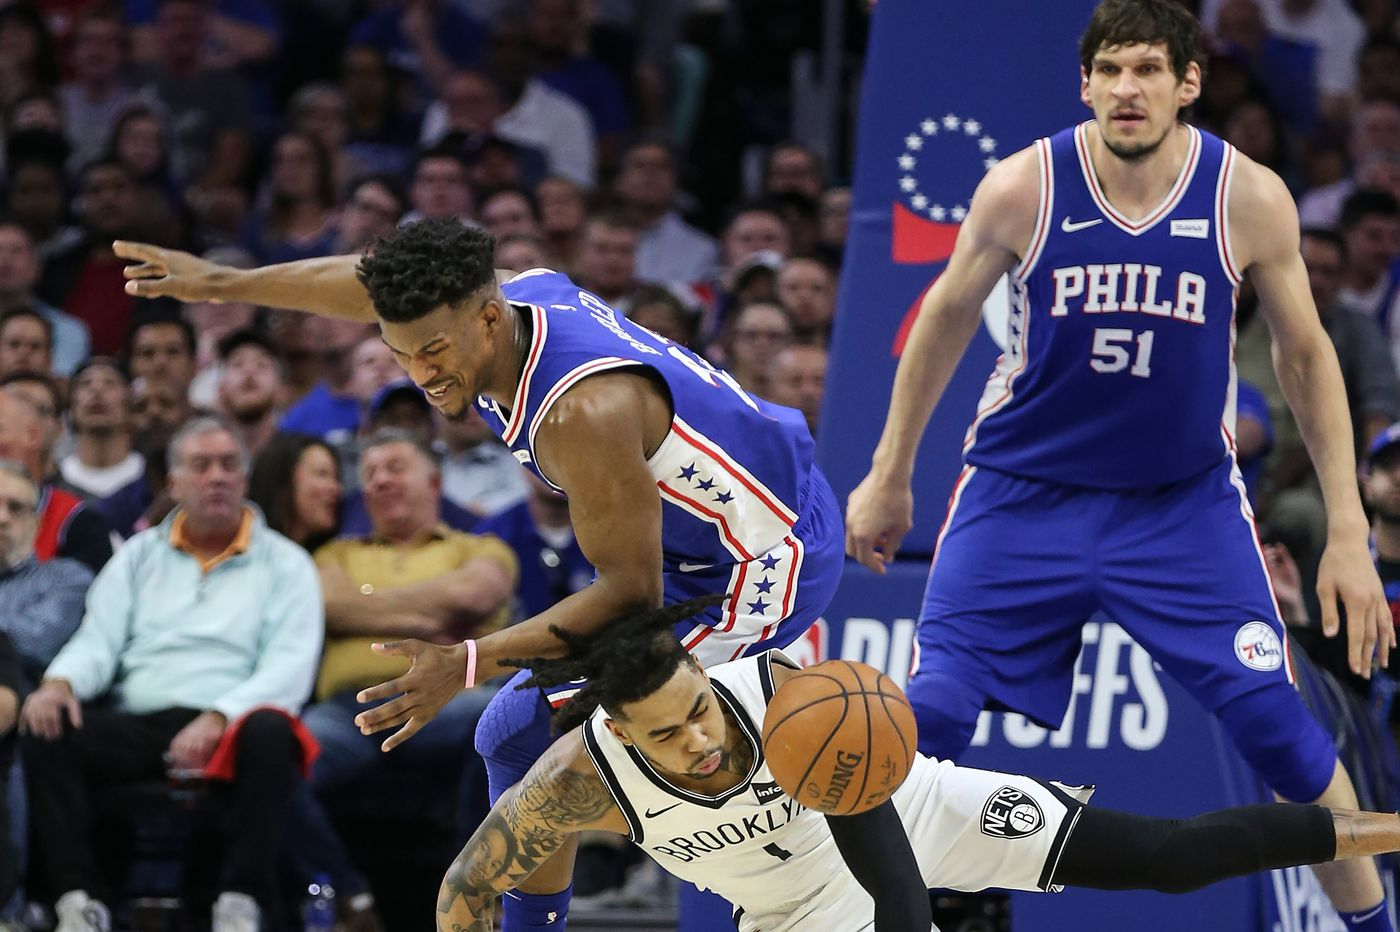 Clinching win over the Nets says something about how the Sixers might beat the Raptors | David Murphy